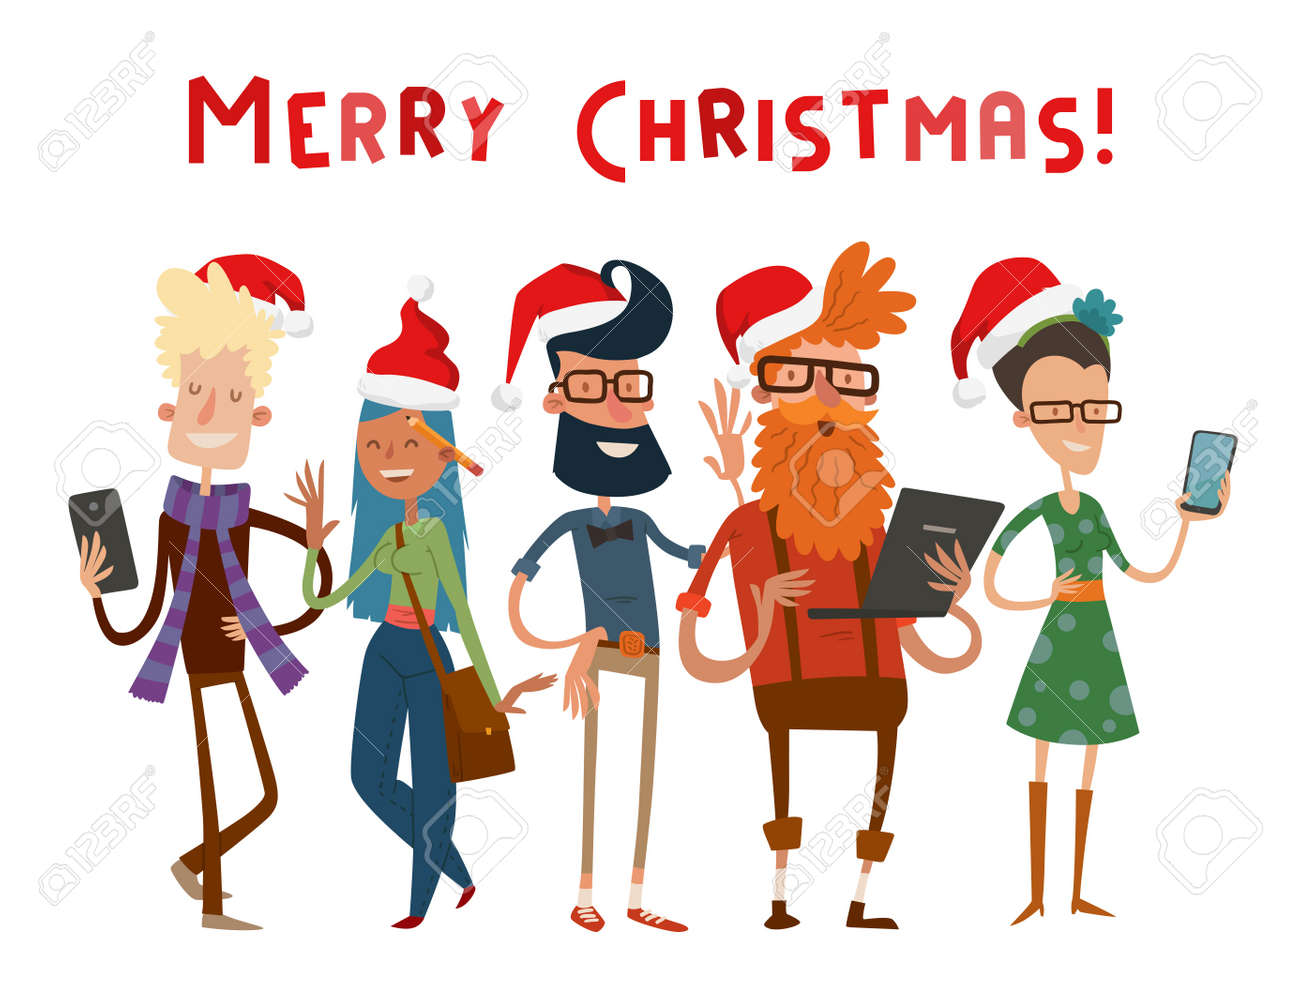 Business team people christmas greeting card partners greeting business team people christmas greeting card partners greeting card command people isolated design studio reheart Image collections